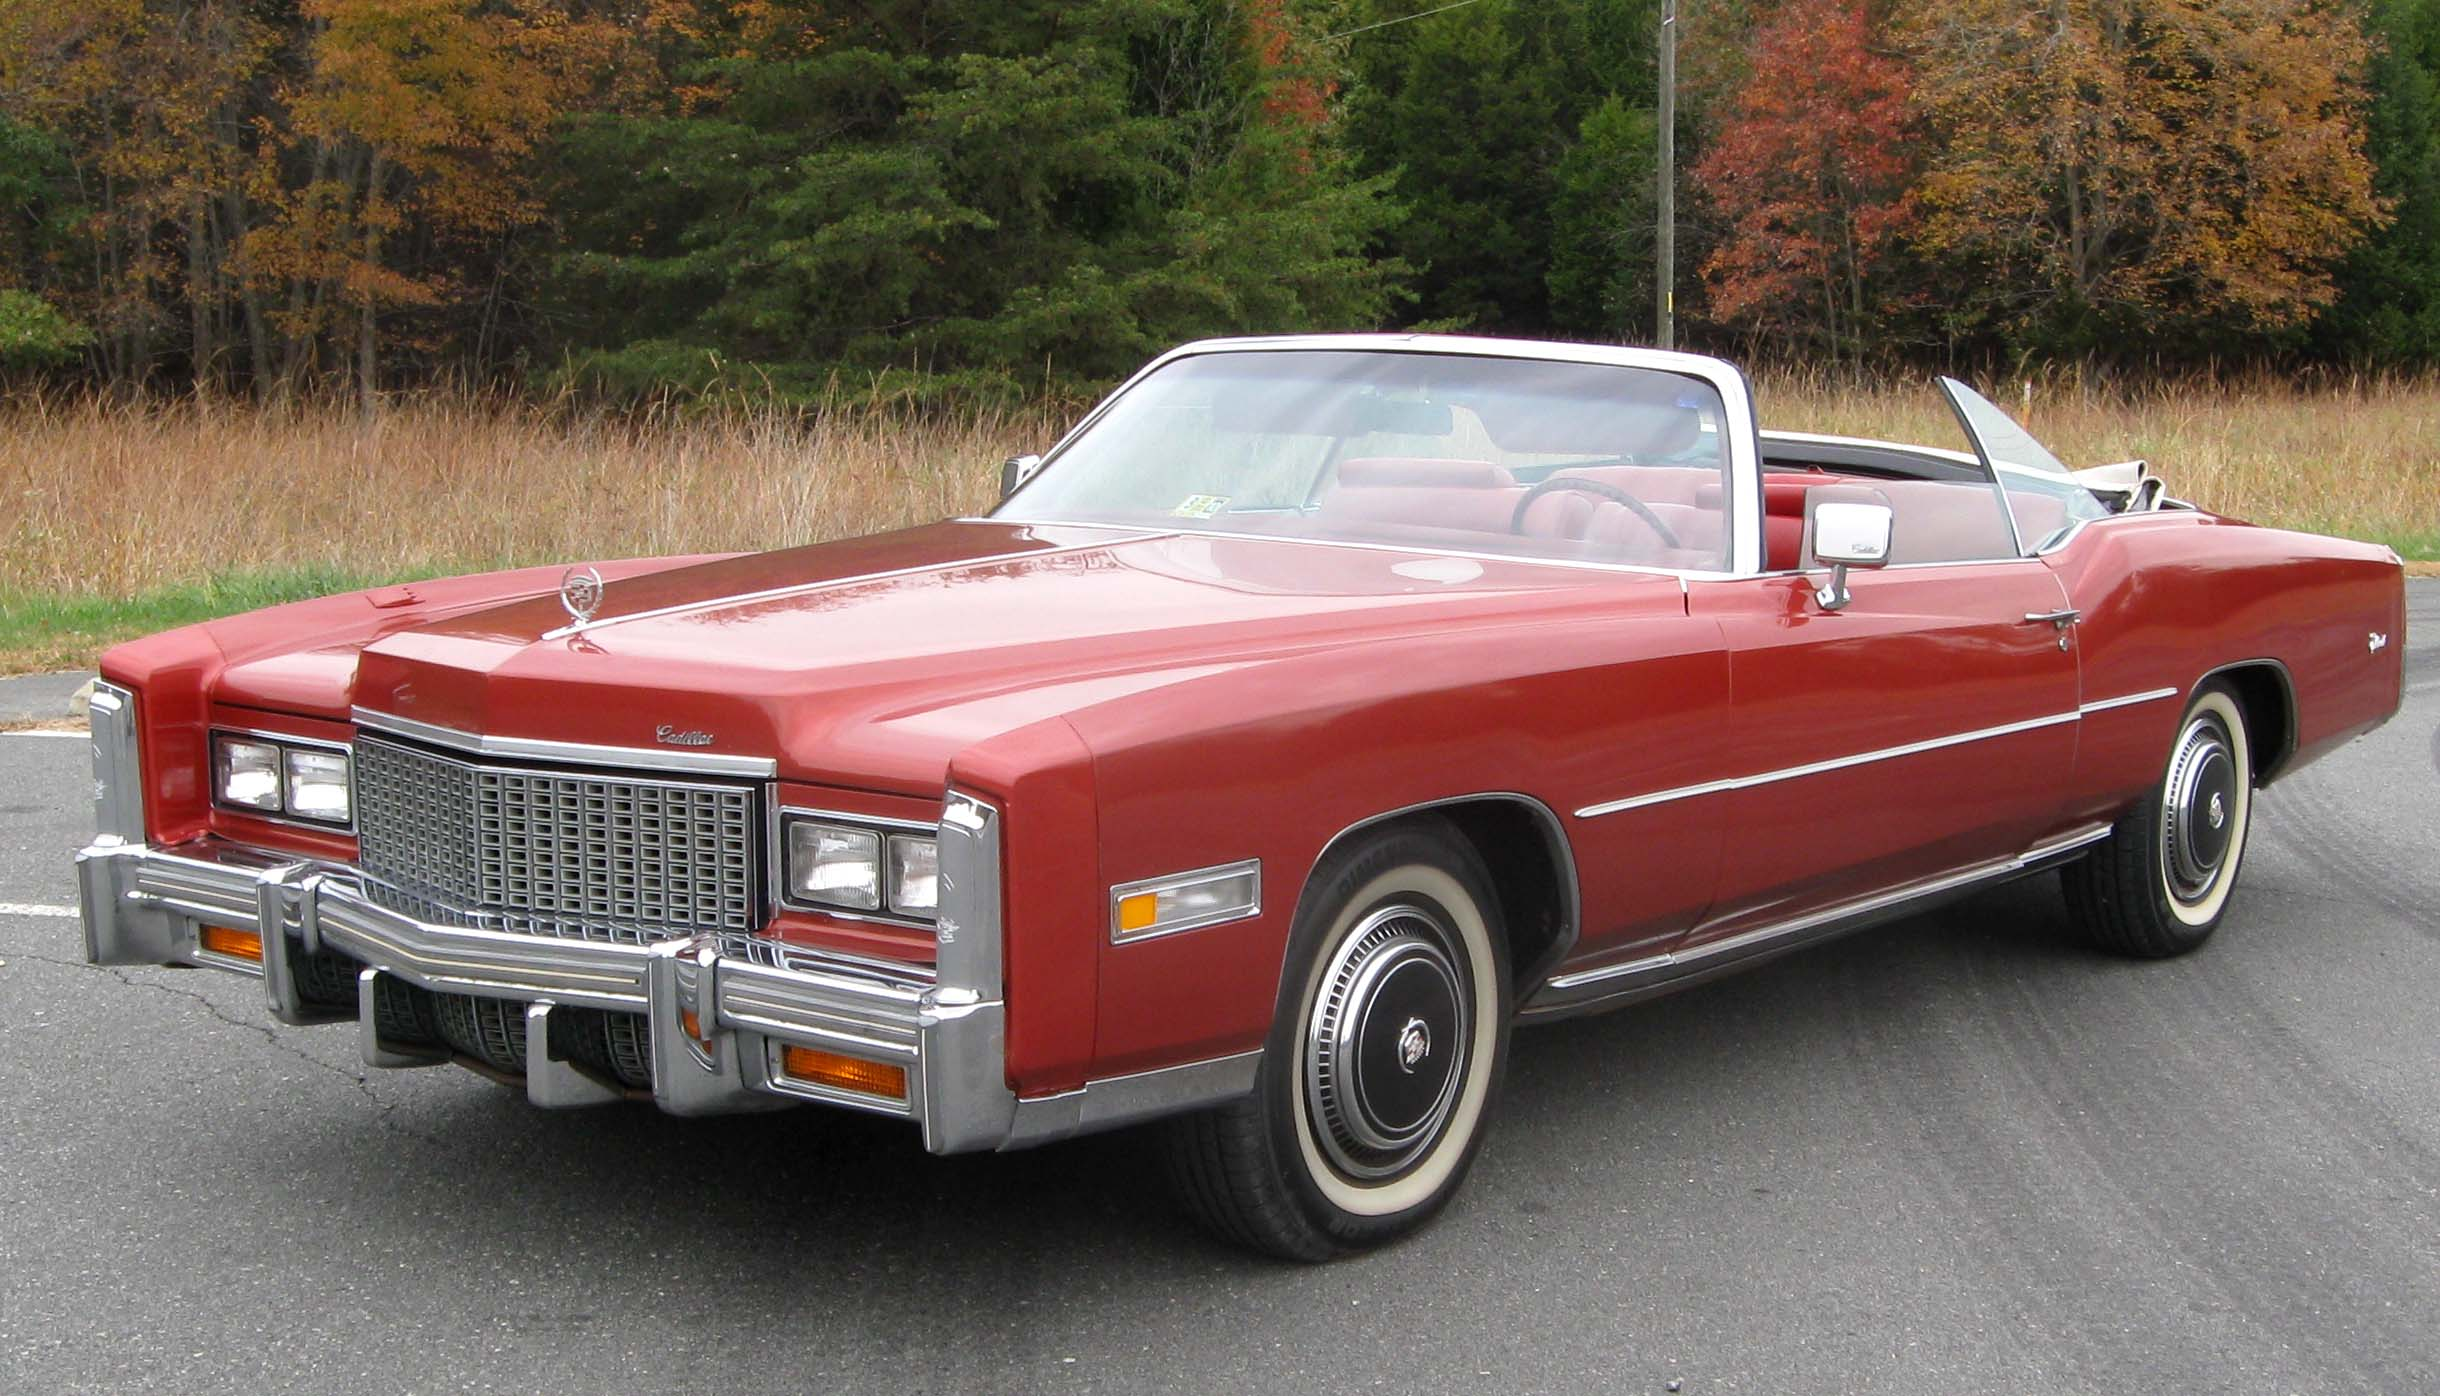 file 1976 cadillac eldorado convertible 2 10 23 wikimedia commons. Black Bedroom Furniture Sets. Home Design Ideas